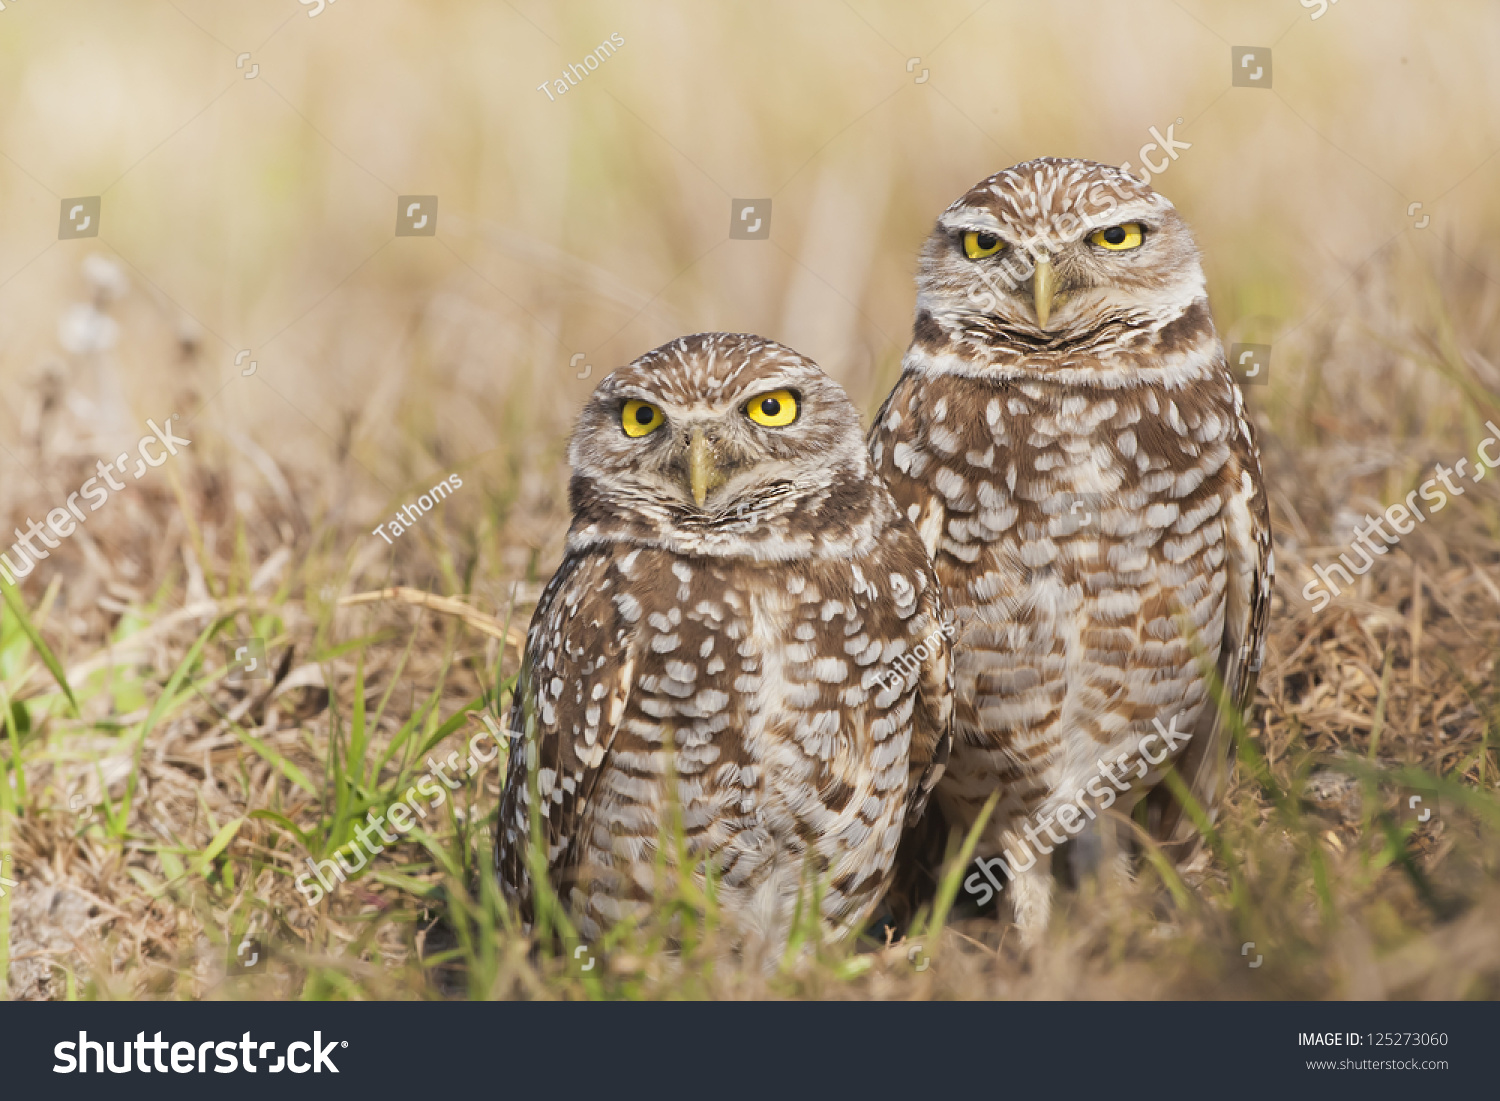 Cute couple. Burrowing Owl. Latin name - Athene cunicularia. Copy space on left.